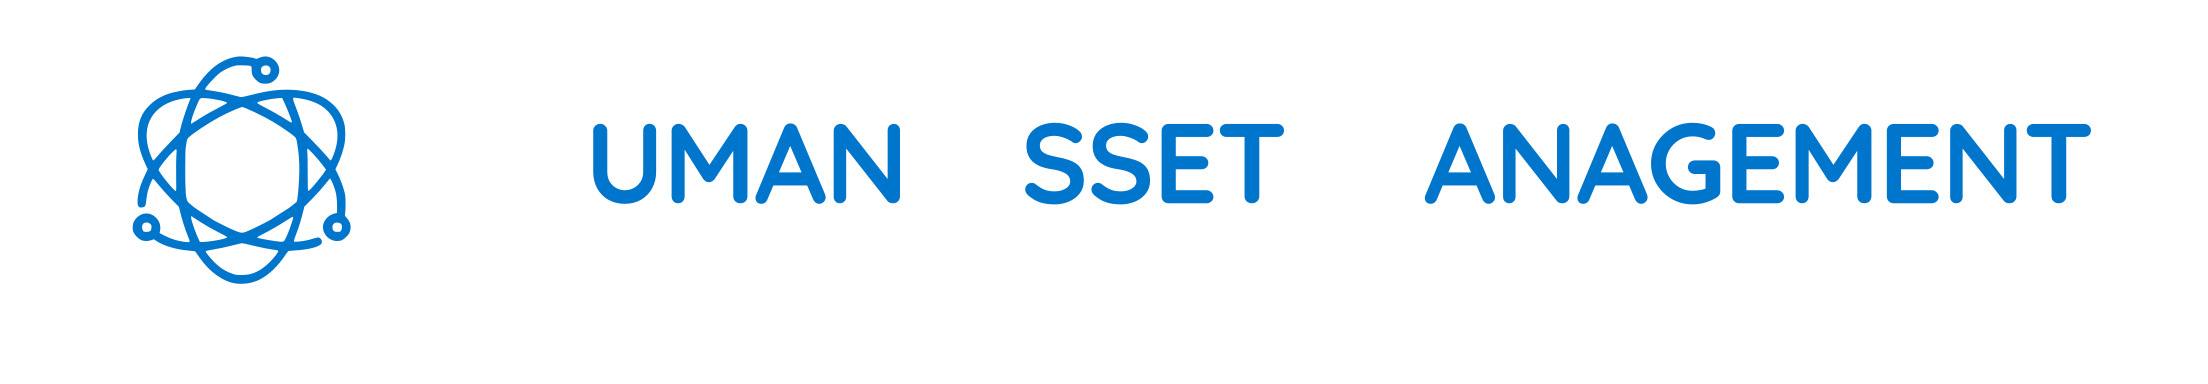 Human Asset Management